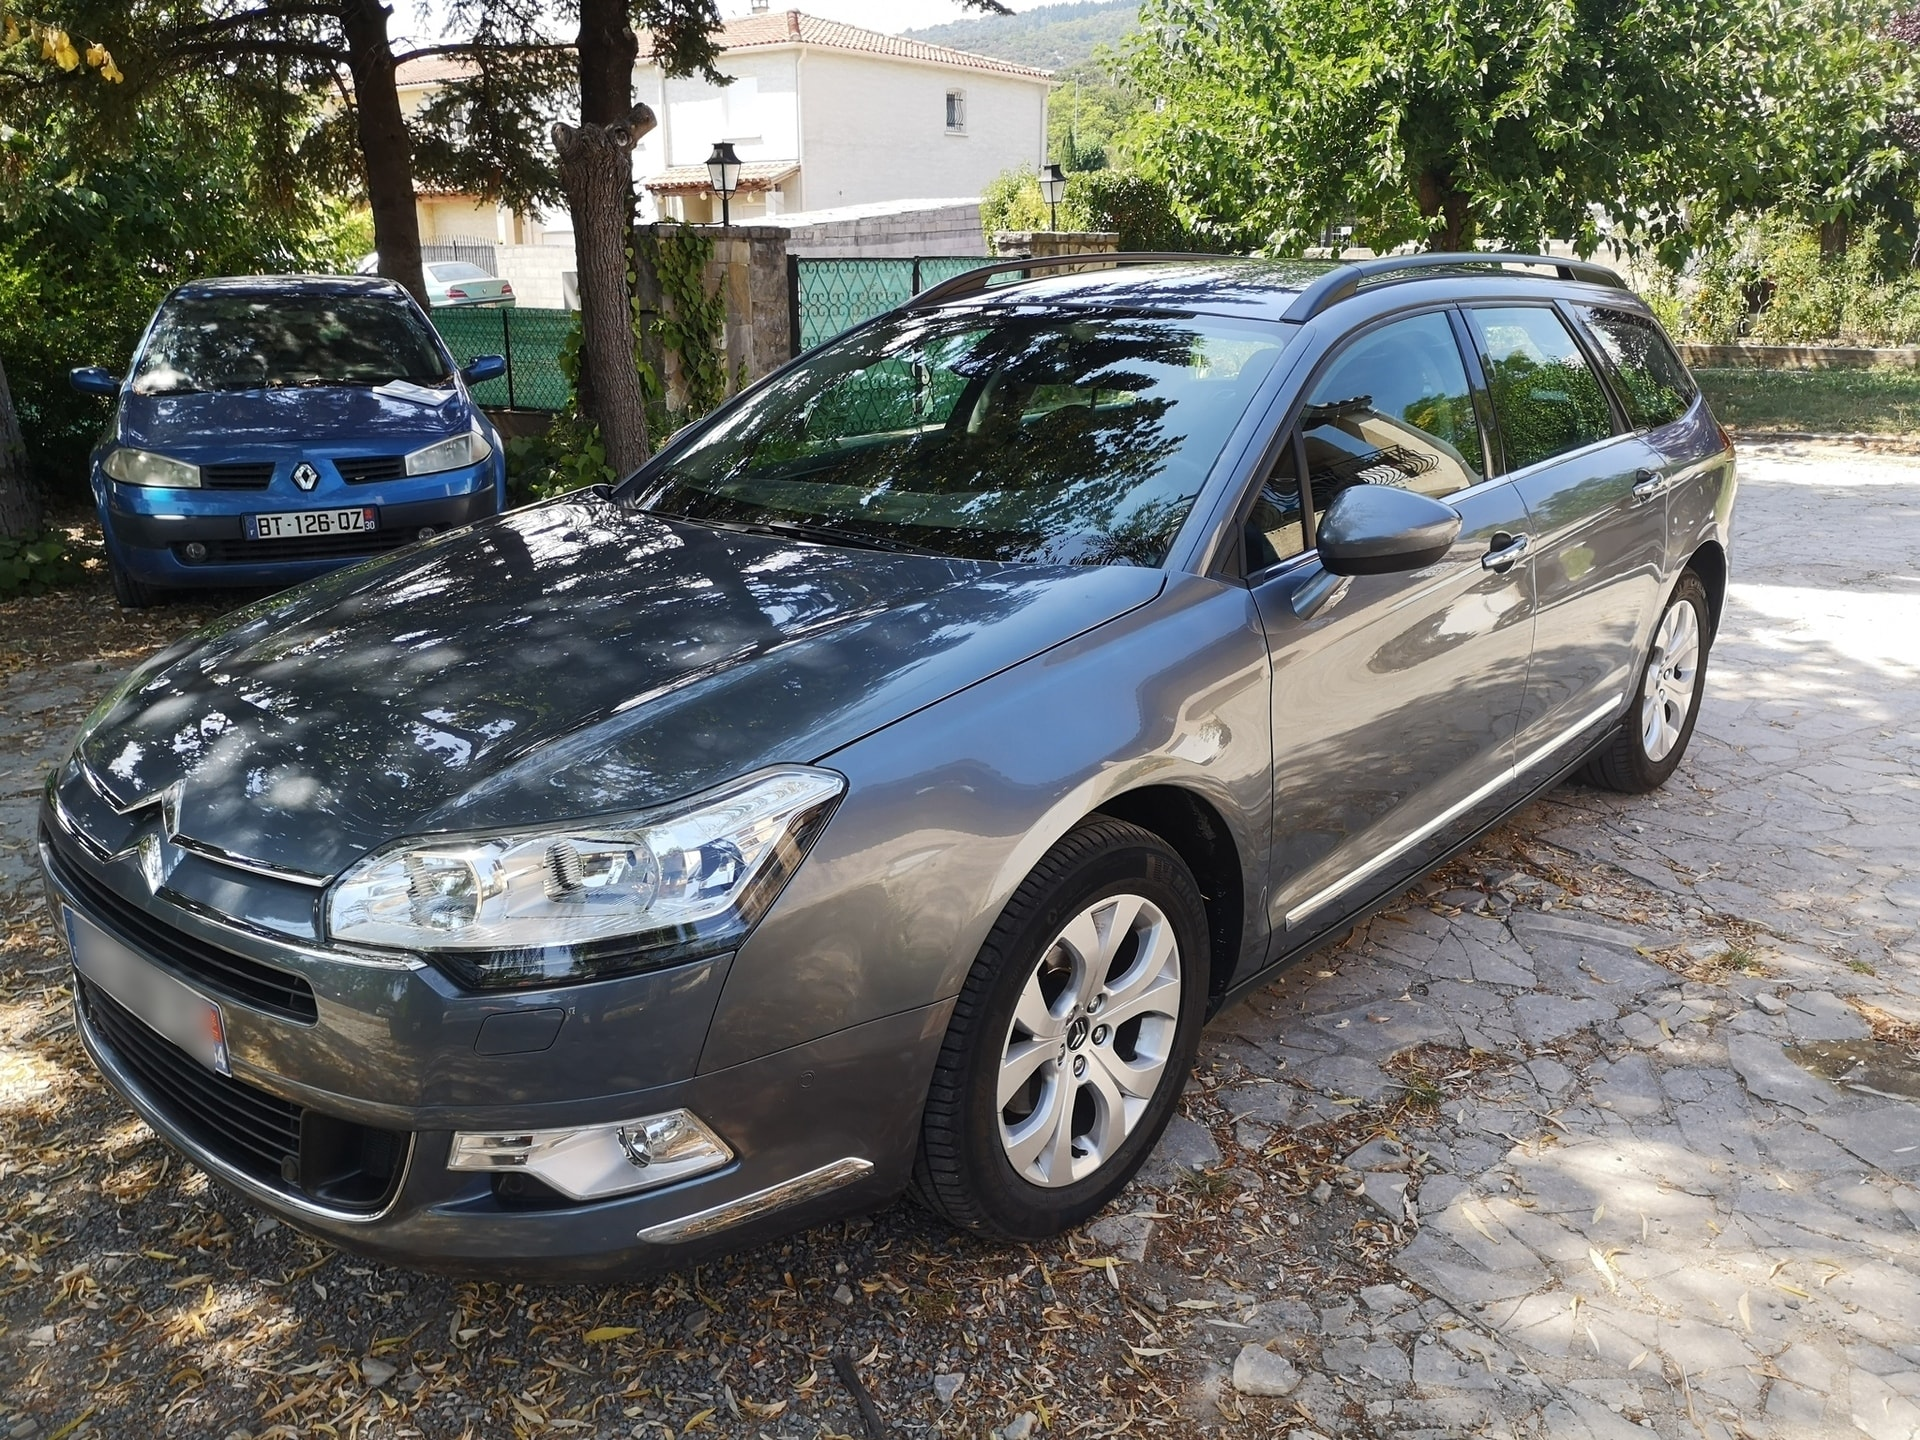 CITROEN C5 BREAK 1.6 HDI 110 ROSSIGNOL - Carverntura